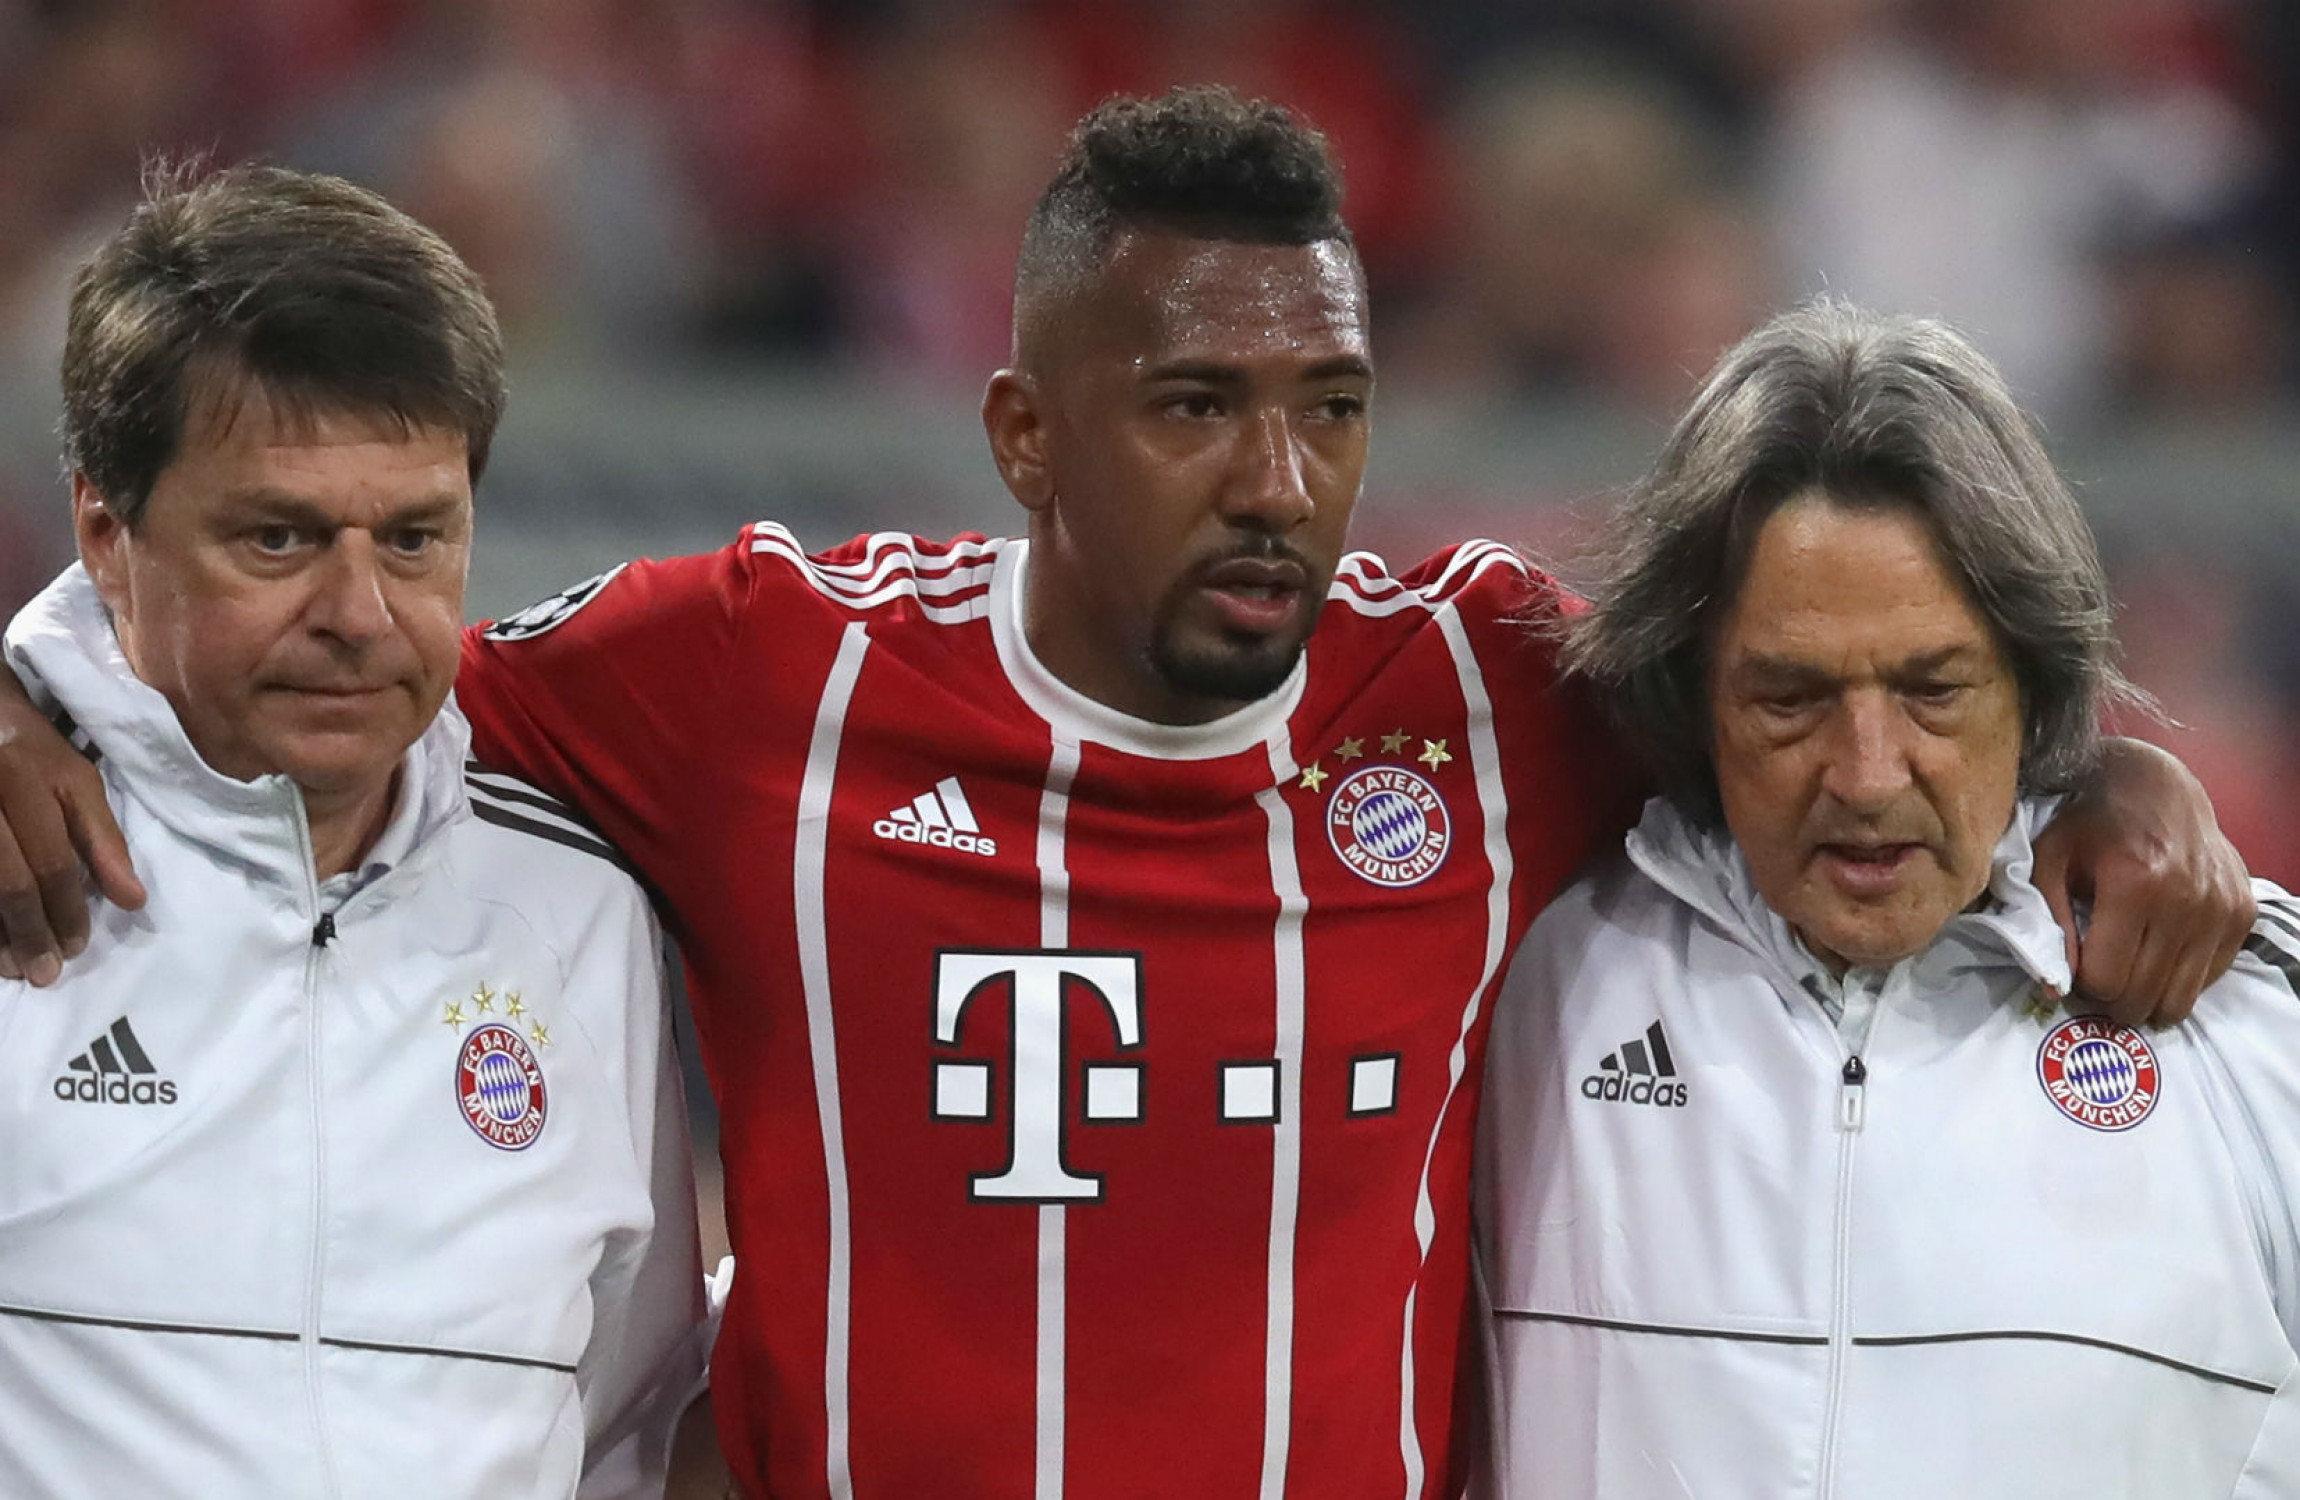 Boateng will be fit for World Cup — Heynckes